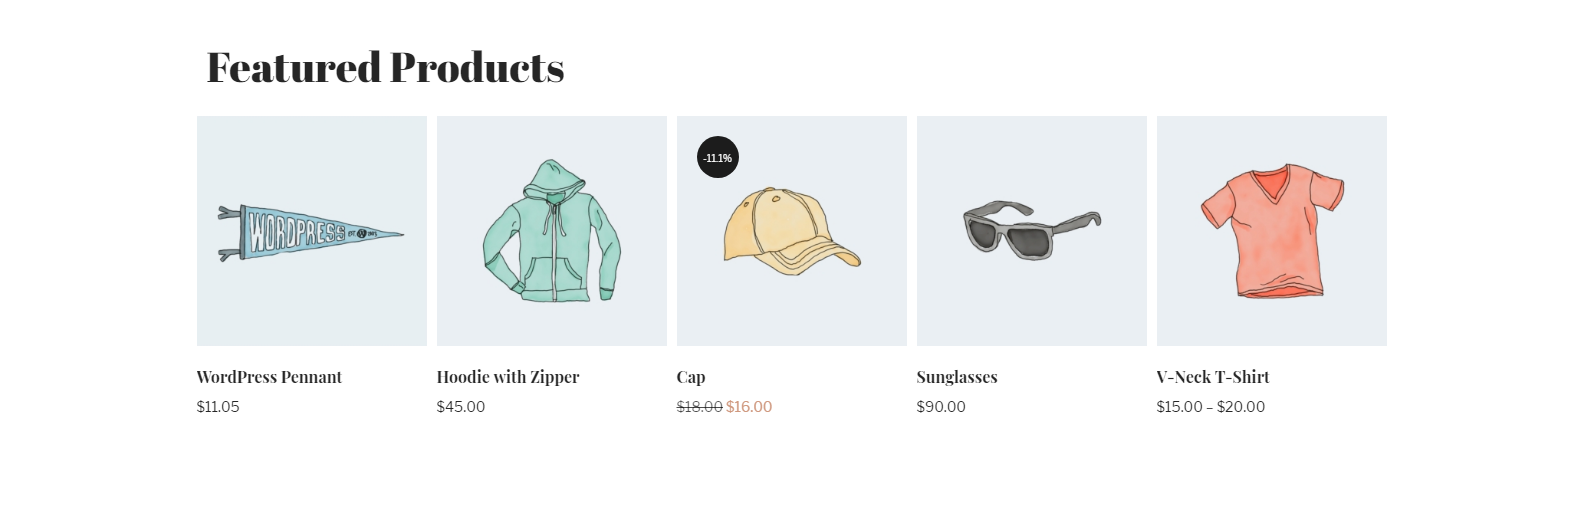 WooCommerce Featured Products in carousel view